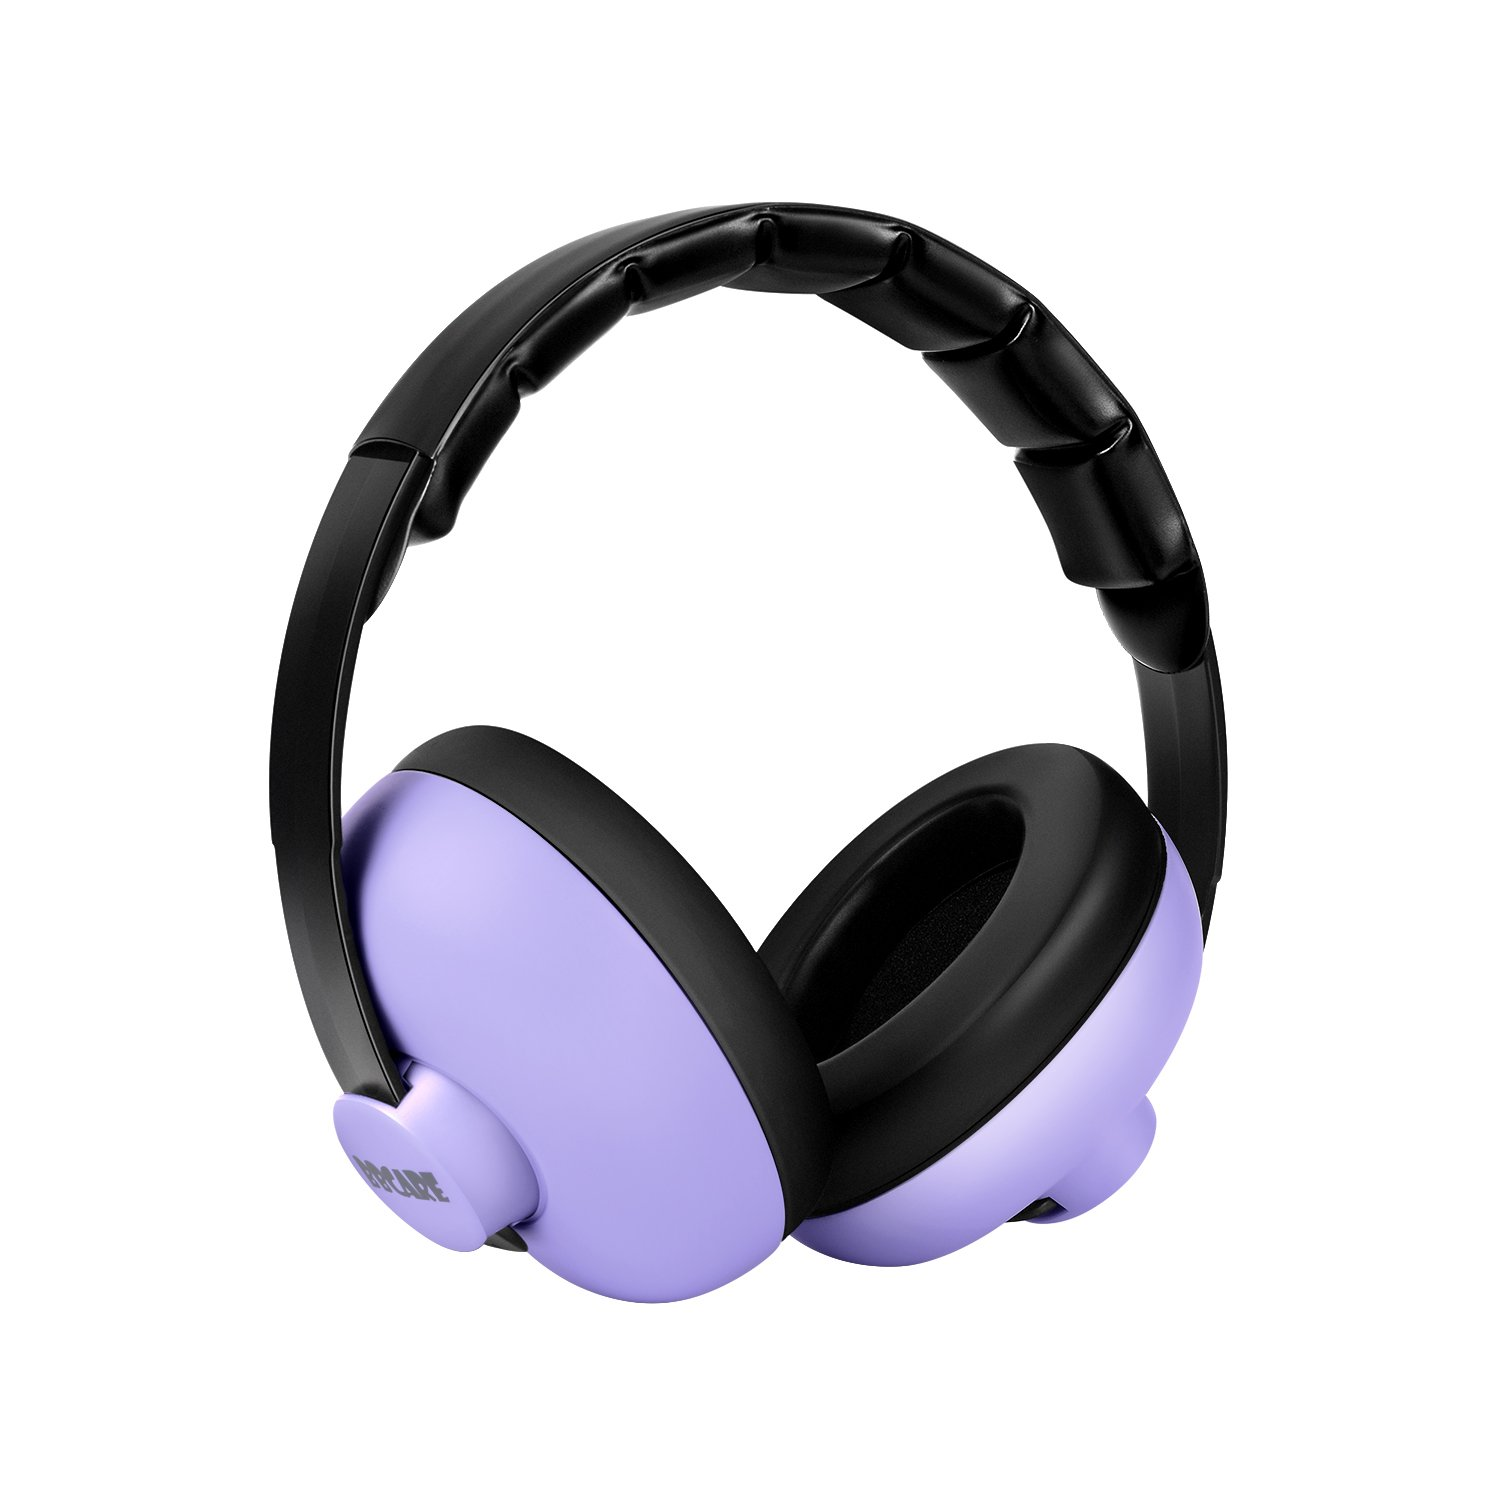 BBcare Baby Ear Protection Noise Cancelling HeadPhones for Babies for 3 Months to 2 Years-Purple